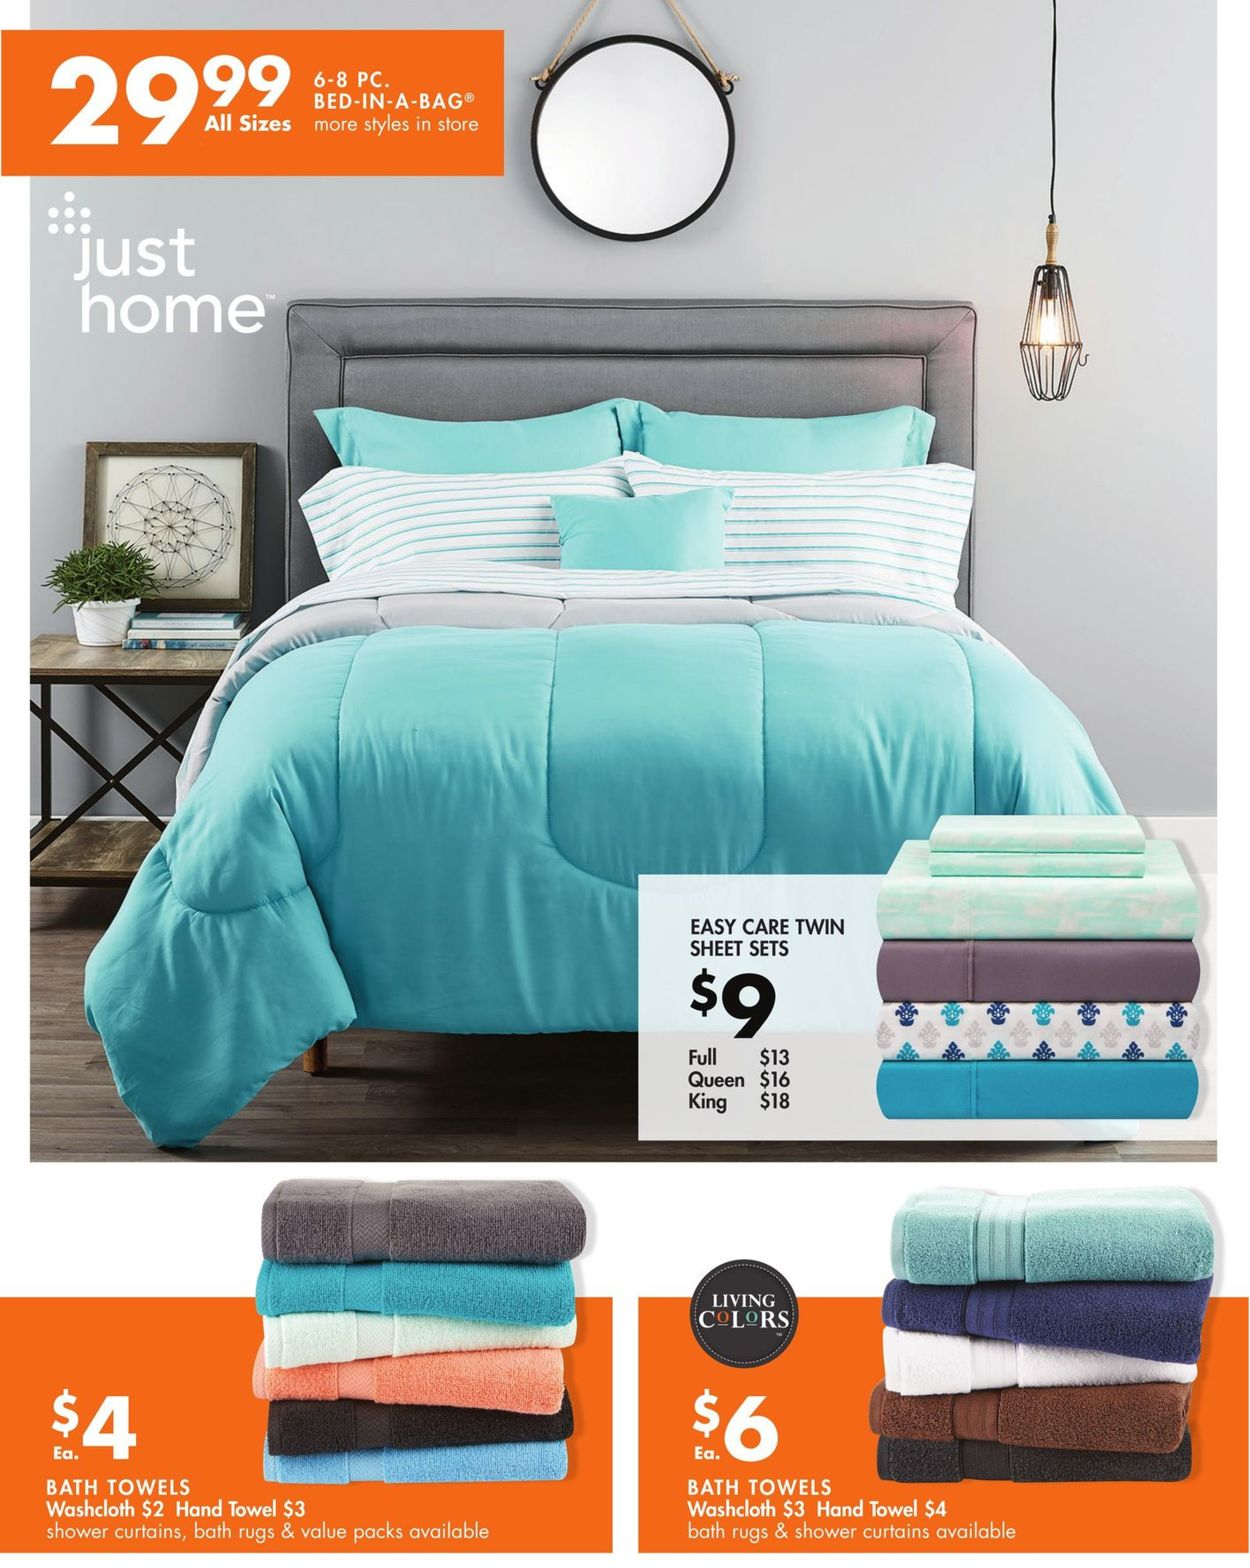 Big Lots Current weekly ad 8/8 - 8/8/8 [8] - frequent-ads.com